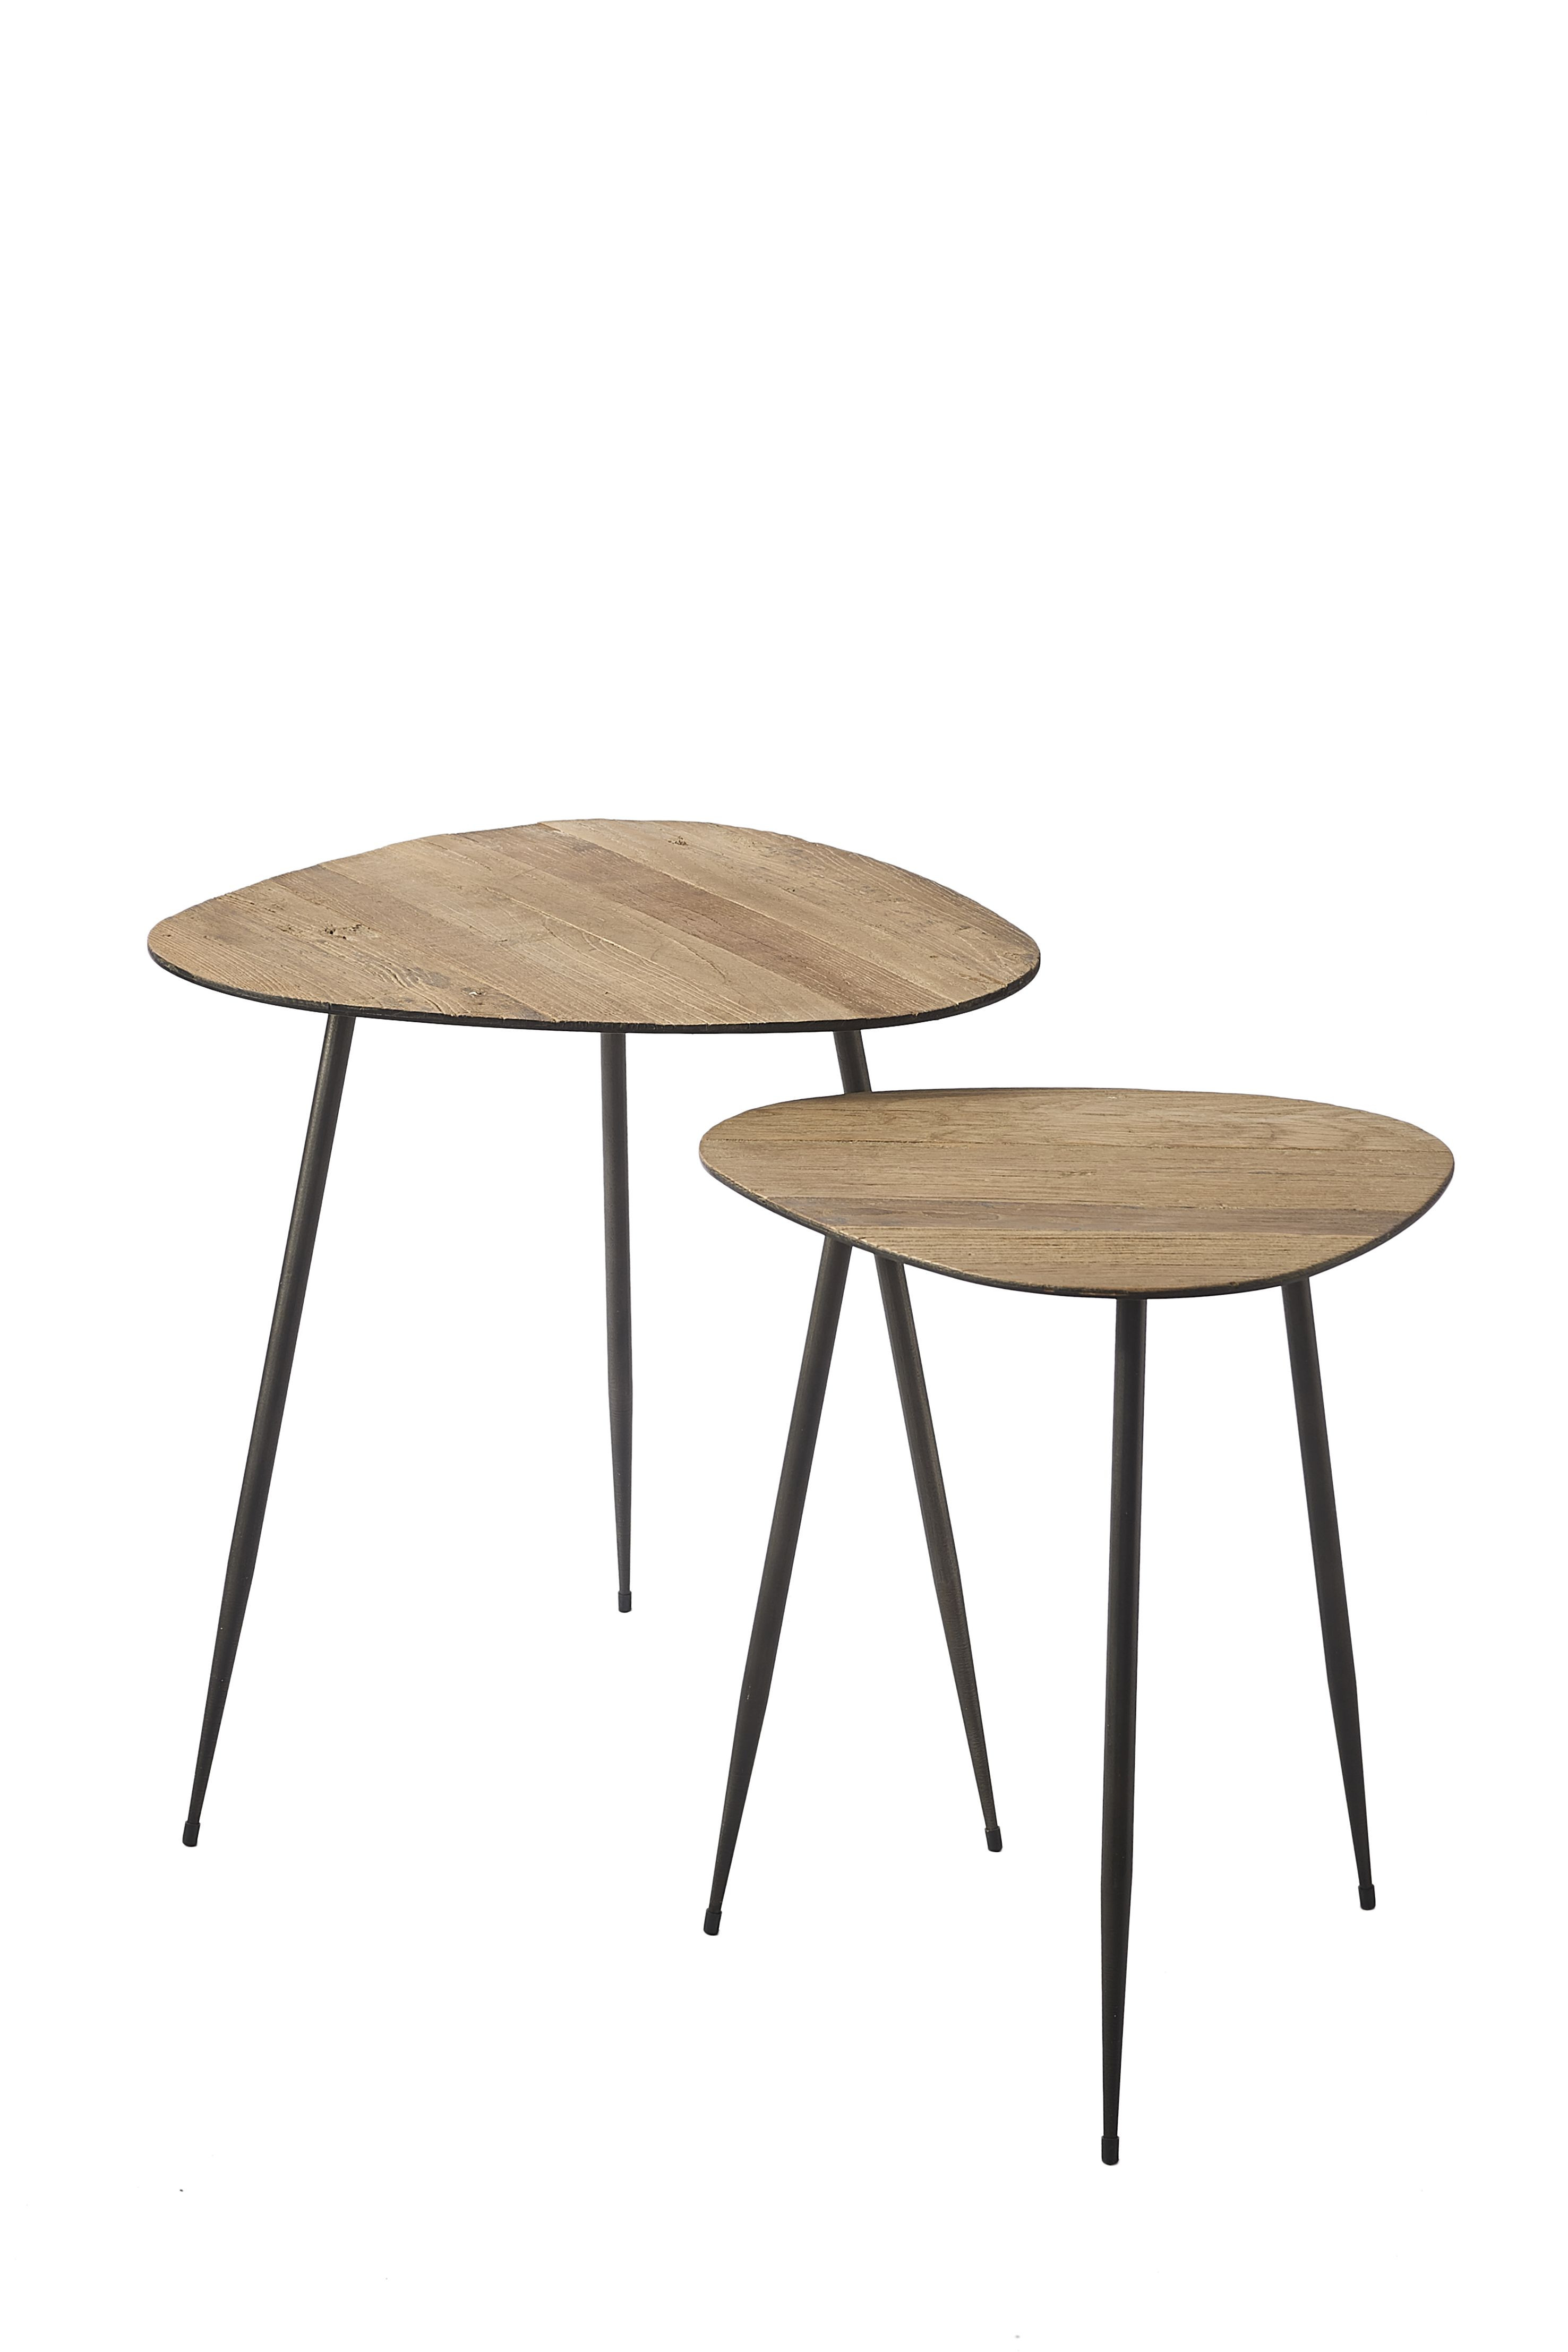 Twiggy End Table Set van 2 / Rivièra Maison